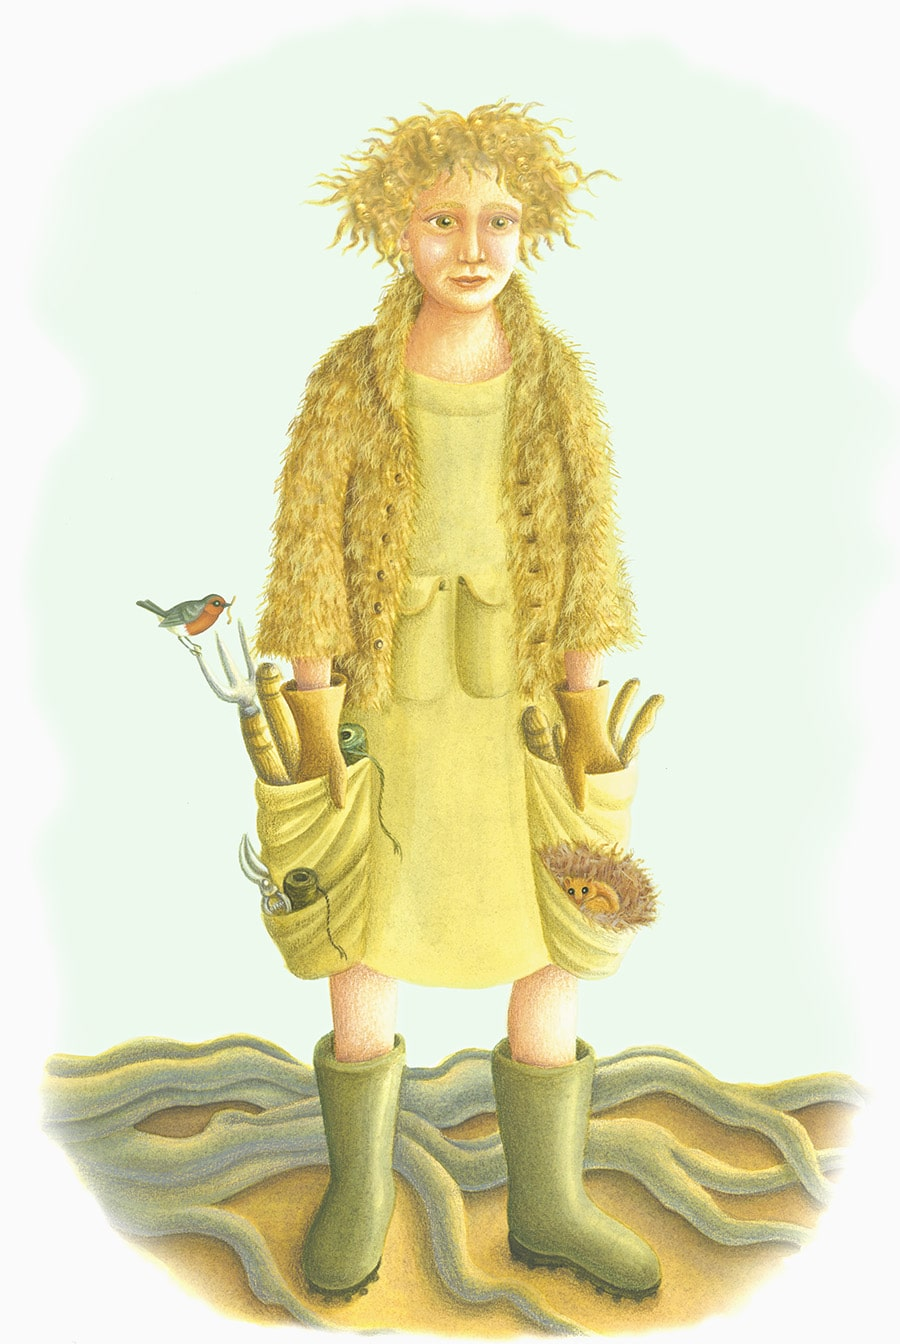 Illustrations for Children's Picture Books 5 GARDEN GIRL (Pixel dimensions available w1782 x h2684)